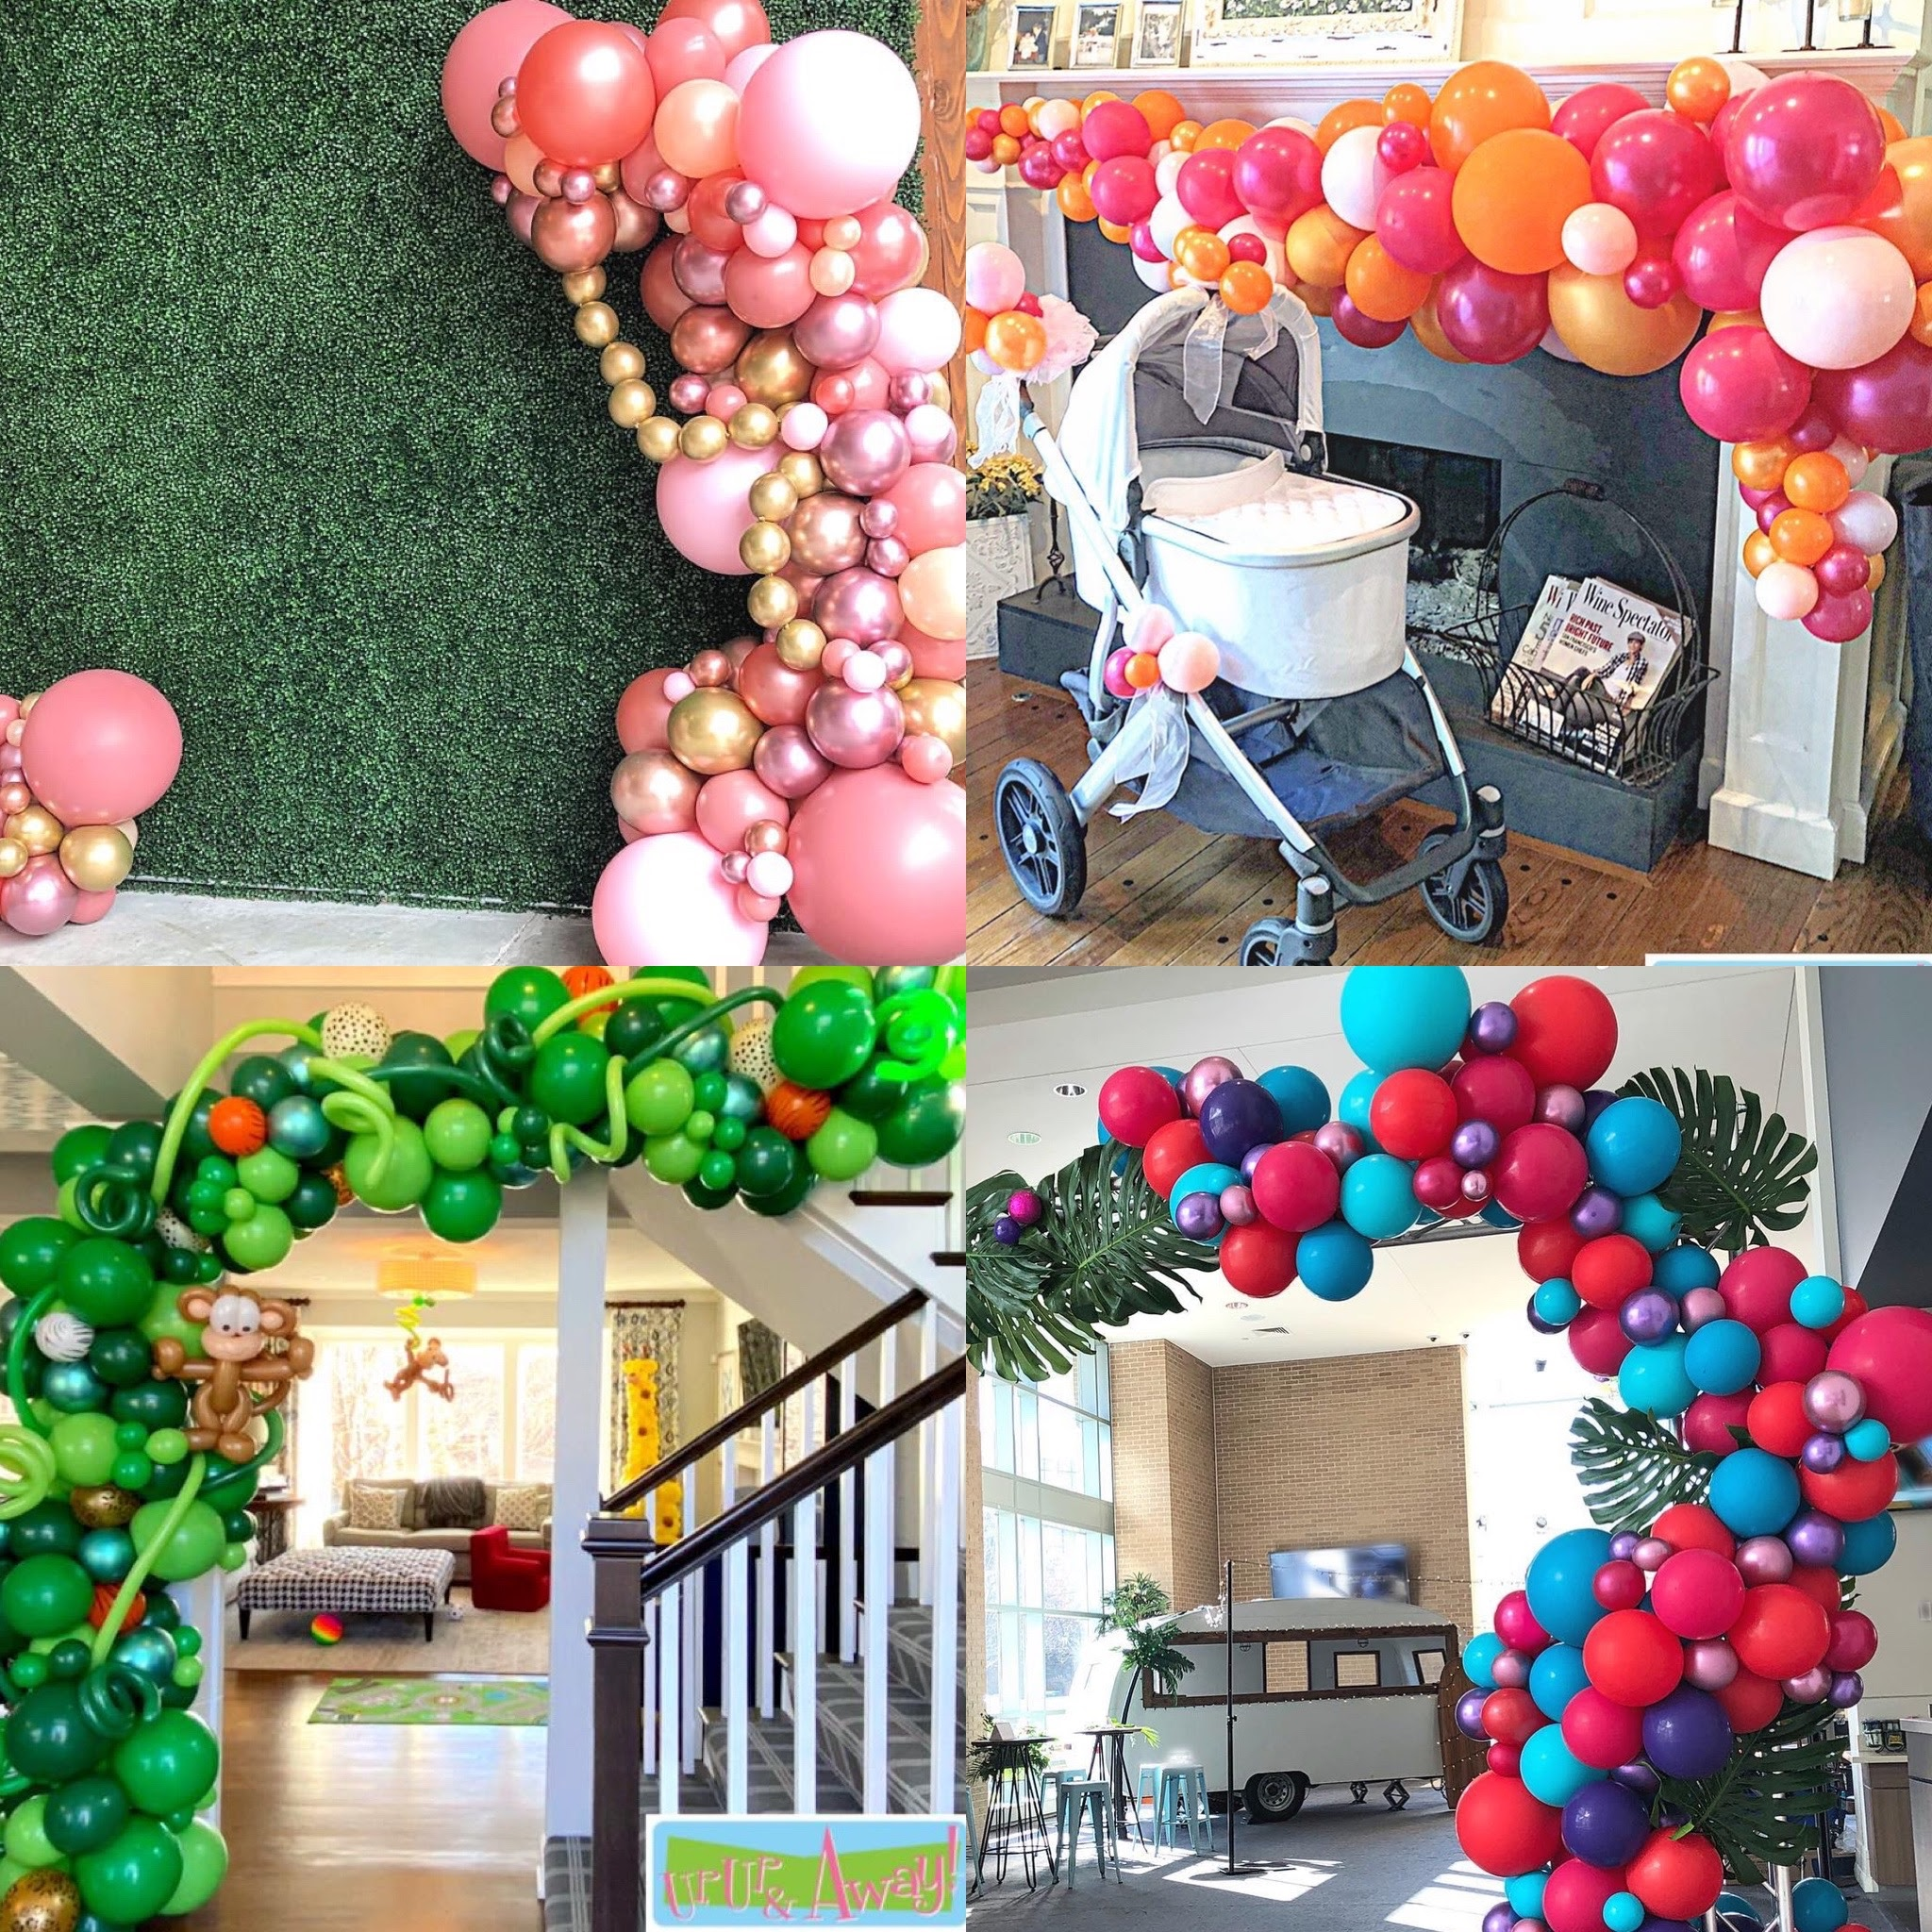 Up, Up & Away! Custom Organic Balloon Installations Kansas City